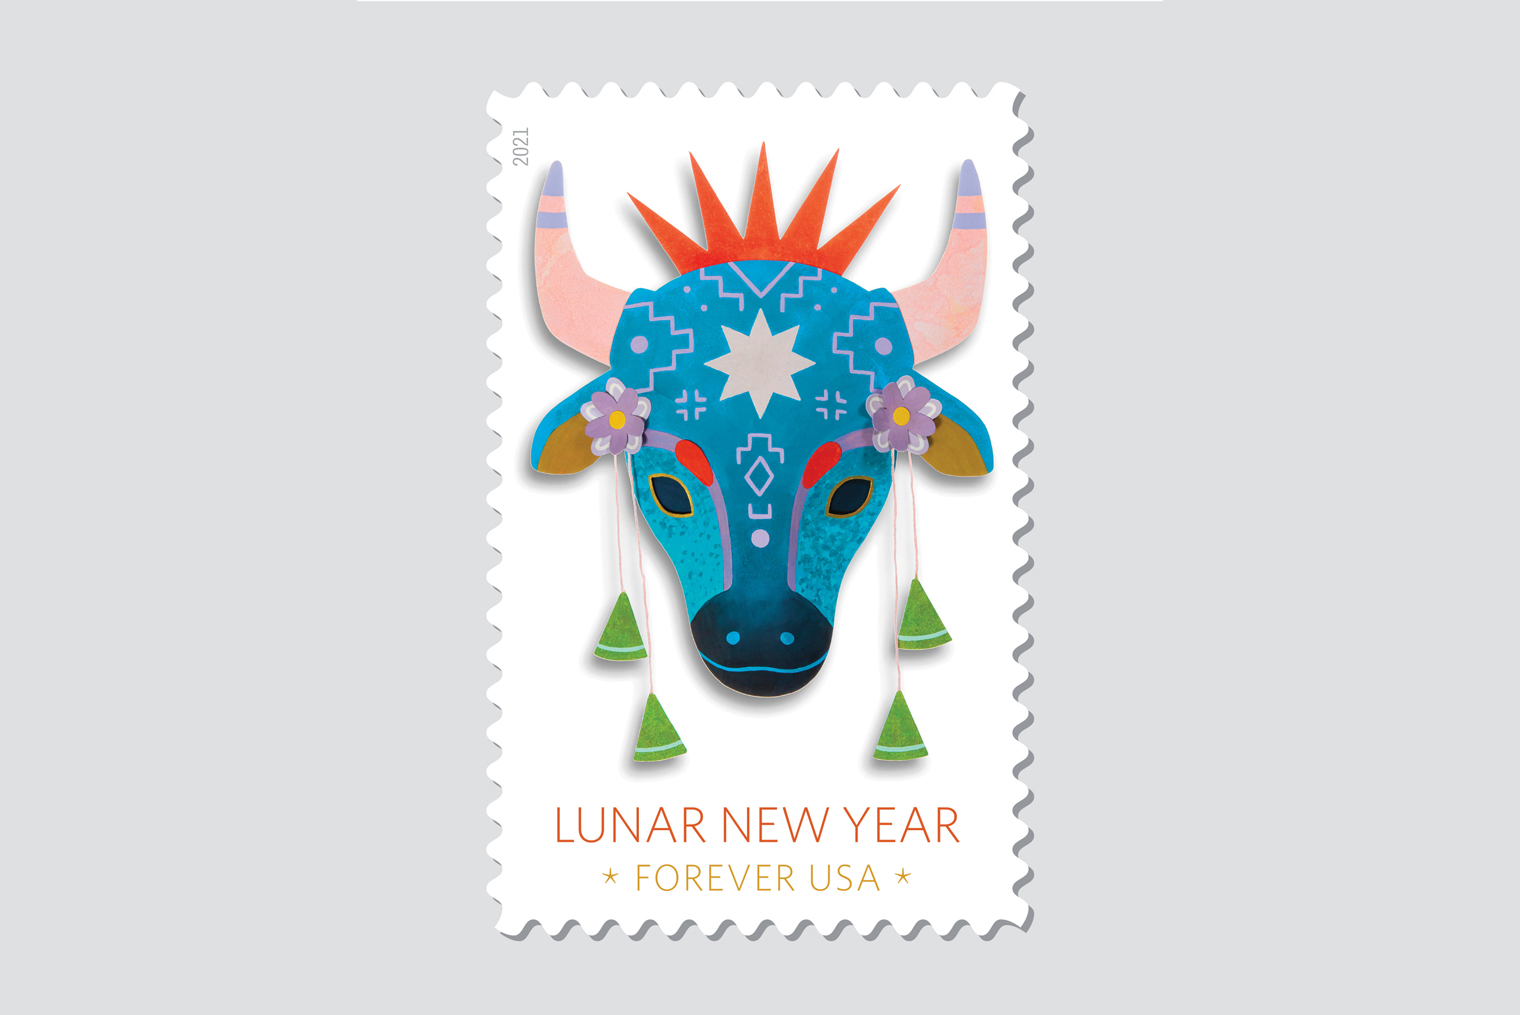 Lunar New Year: Year of the Ox Stamp